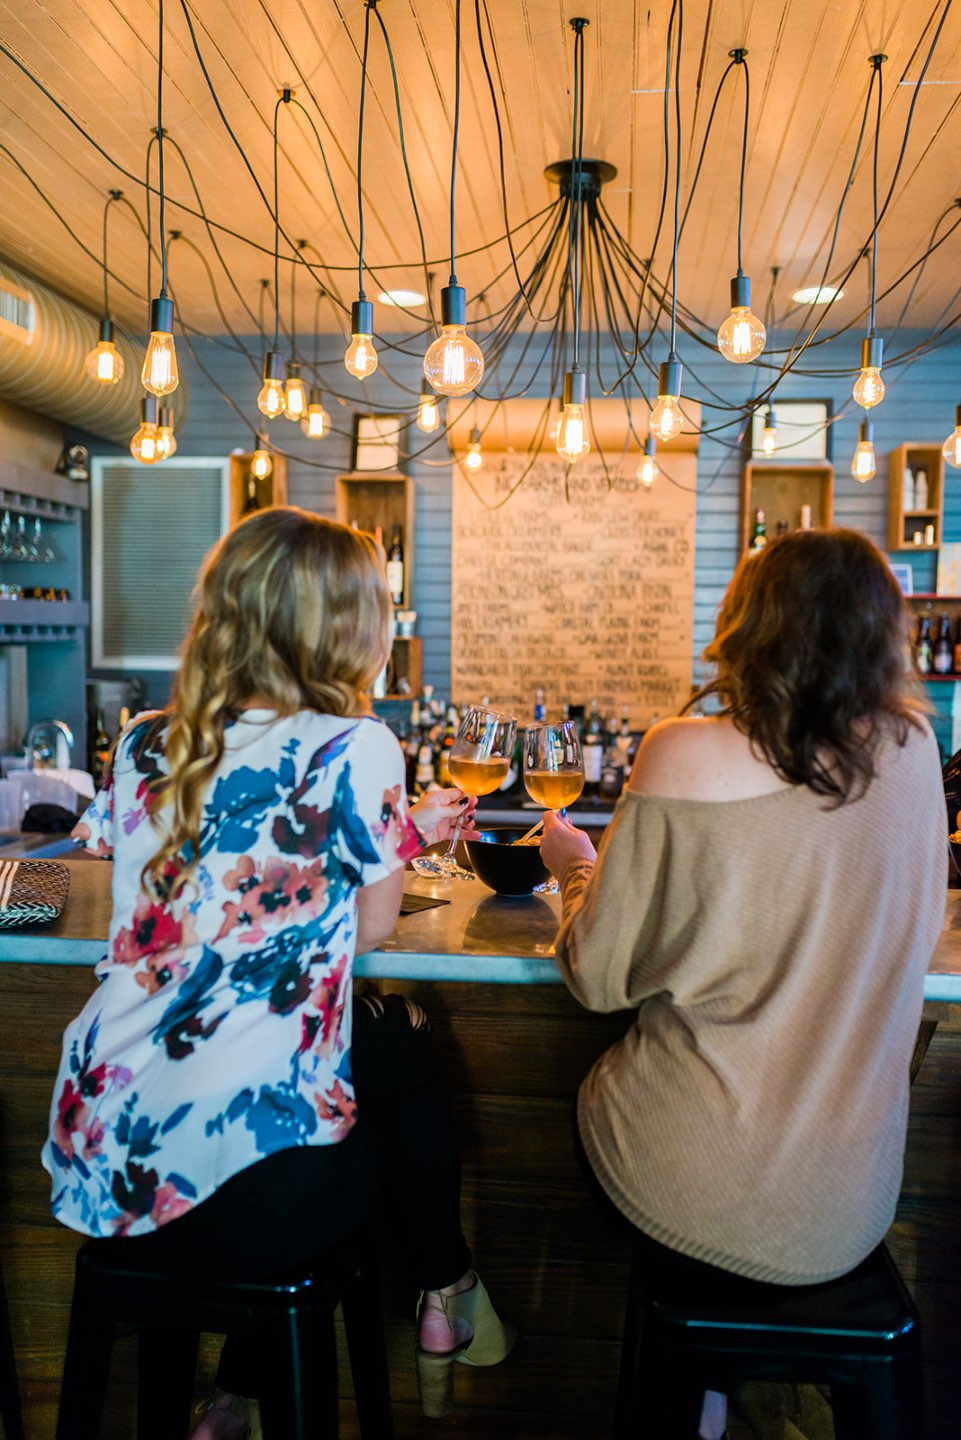 The 20 North Carolina Restaurants I Can't Wait to Visit after Quarantine - I'm Fixin' To - @mbg0112 | Best North Carolina Restaurants by popular N.C. blog, I'm Fixin' To: image of two women sitting at the bar at the Hen and the Hog restaurant.